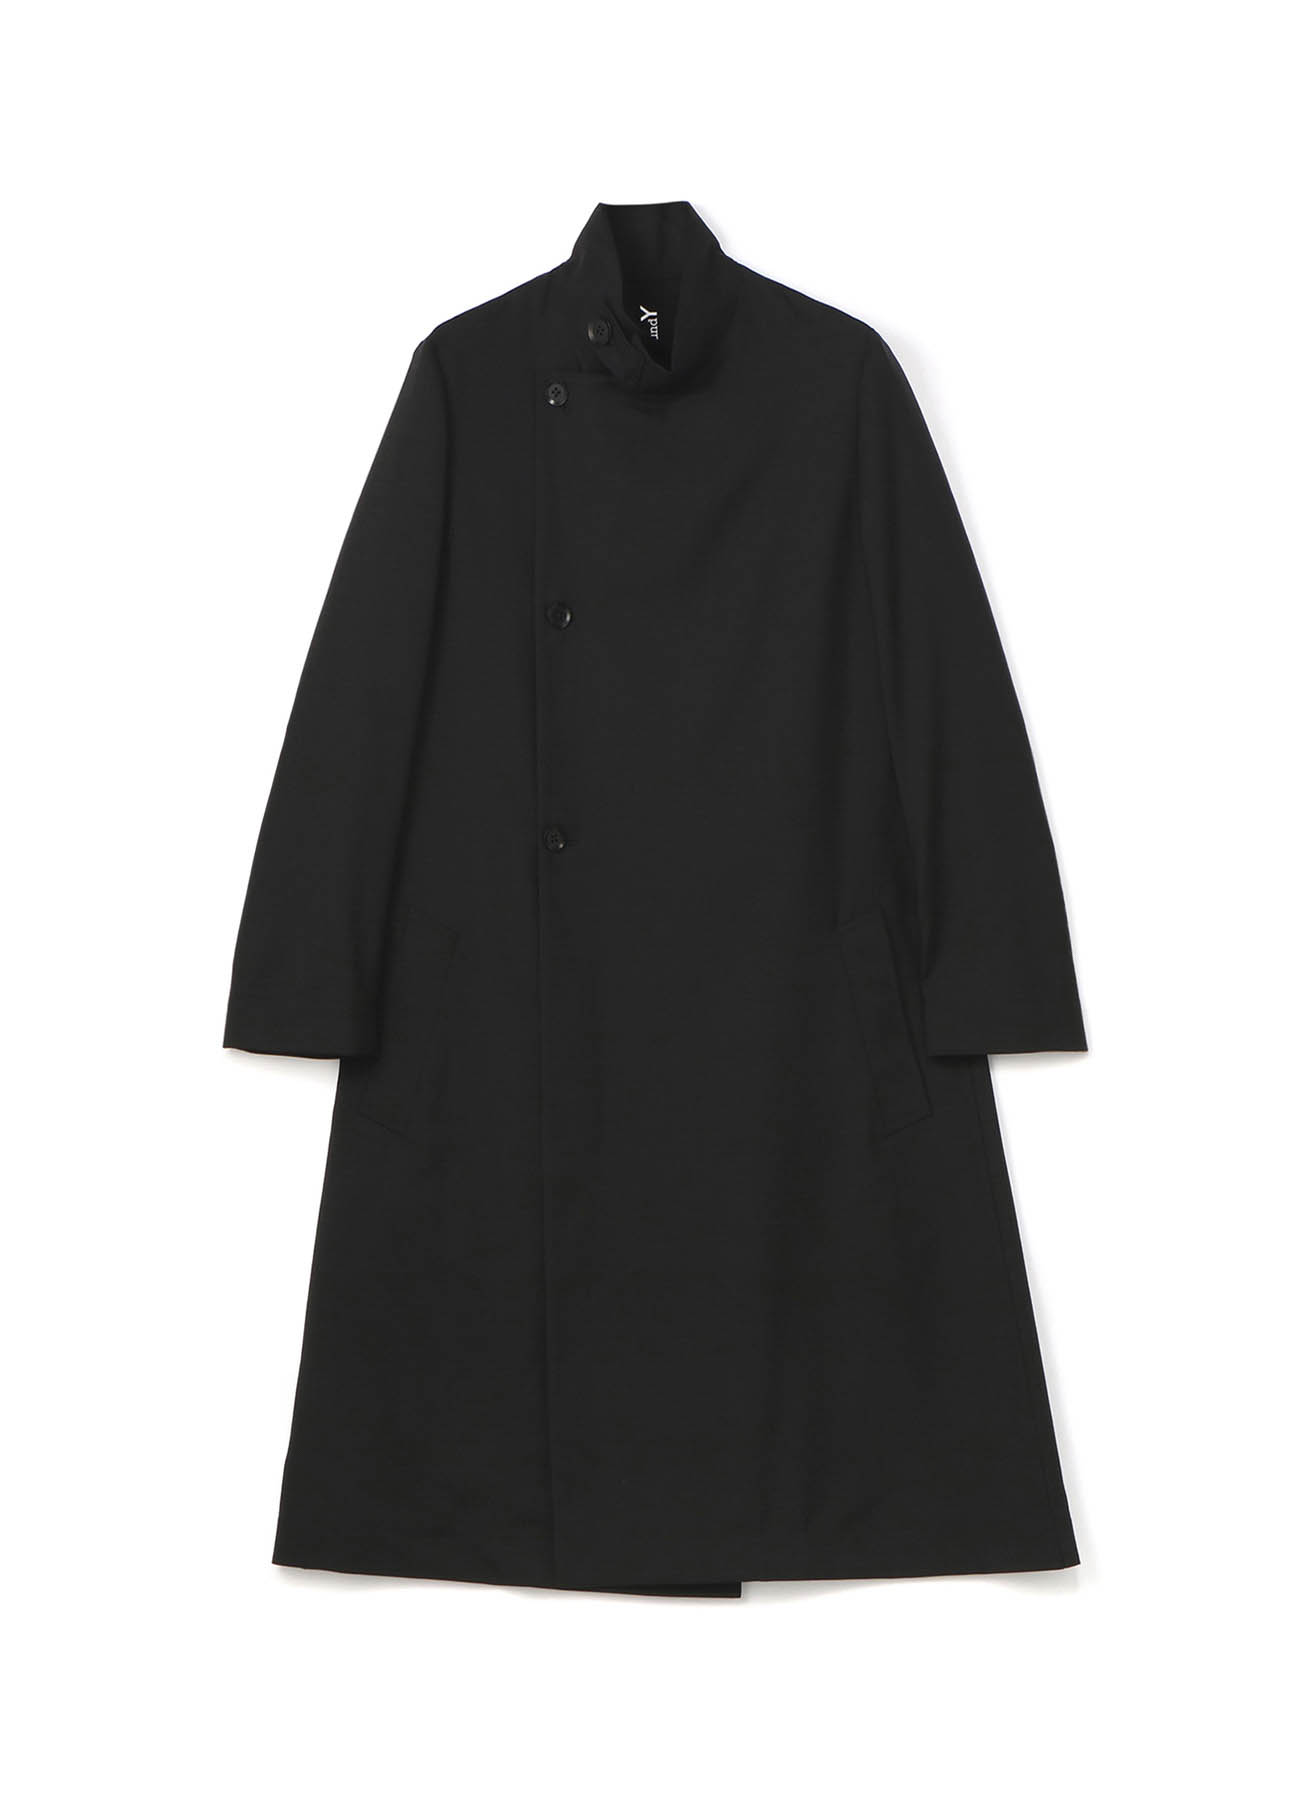 T/W? gaberdine Wrap Dress